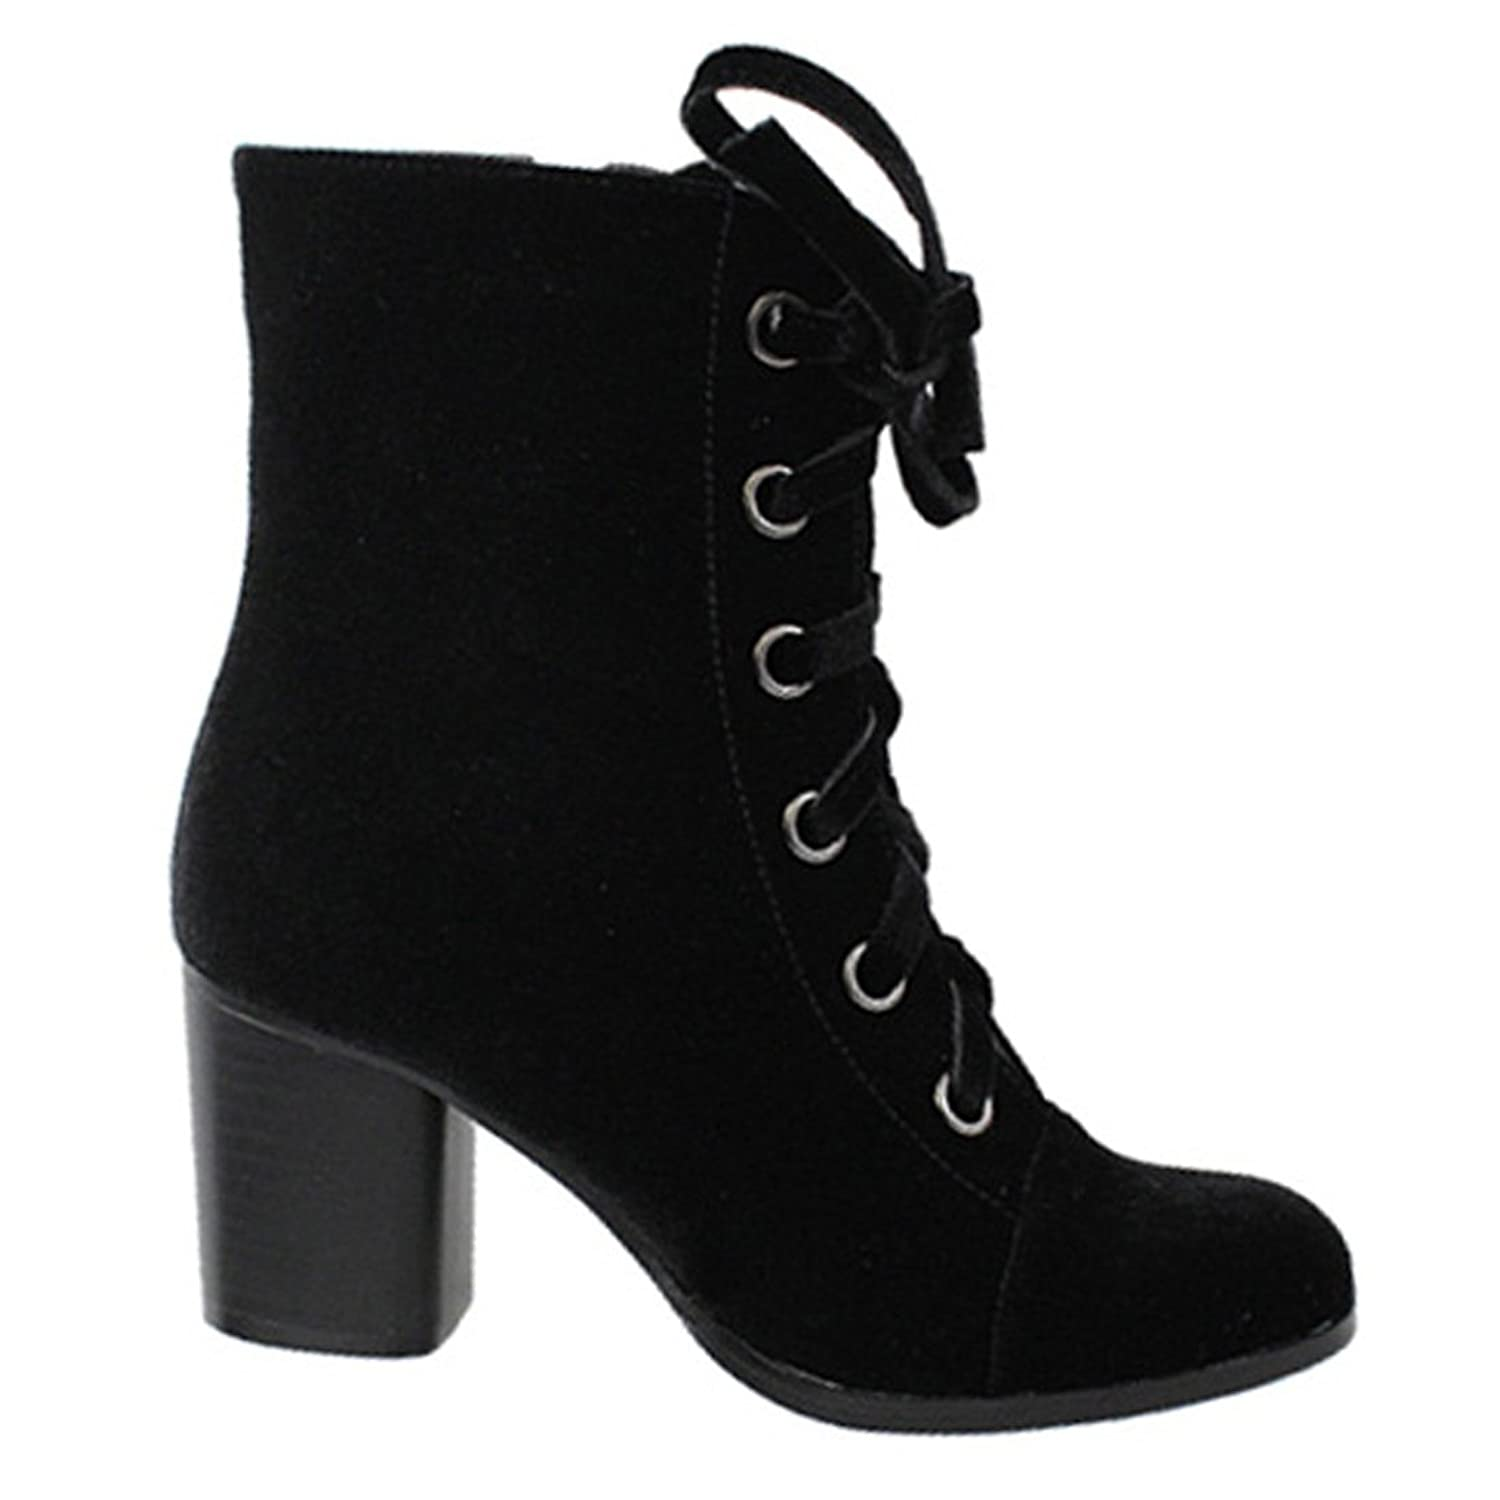 Yoki Women's Kaylyn Ankle Boot 50%OFF